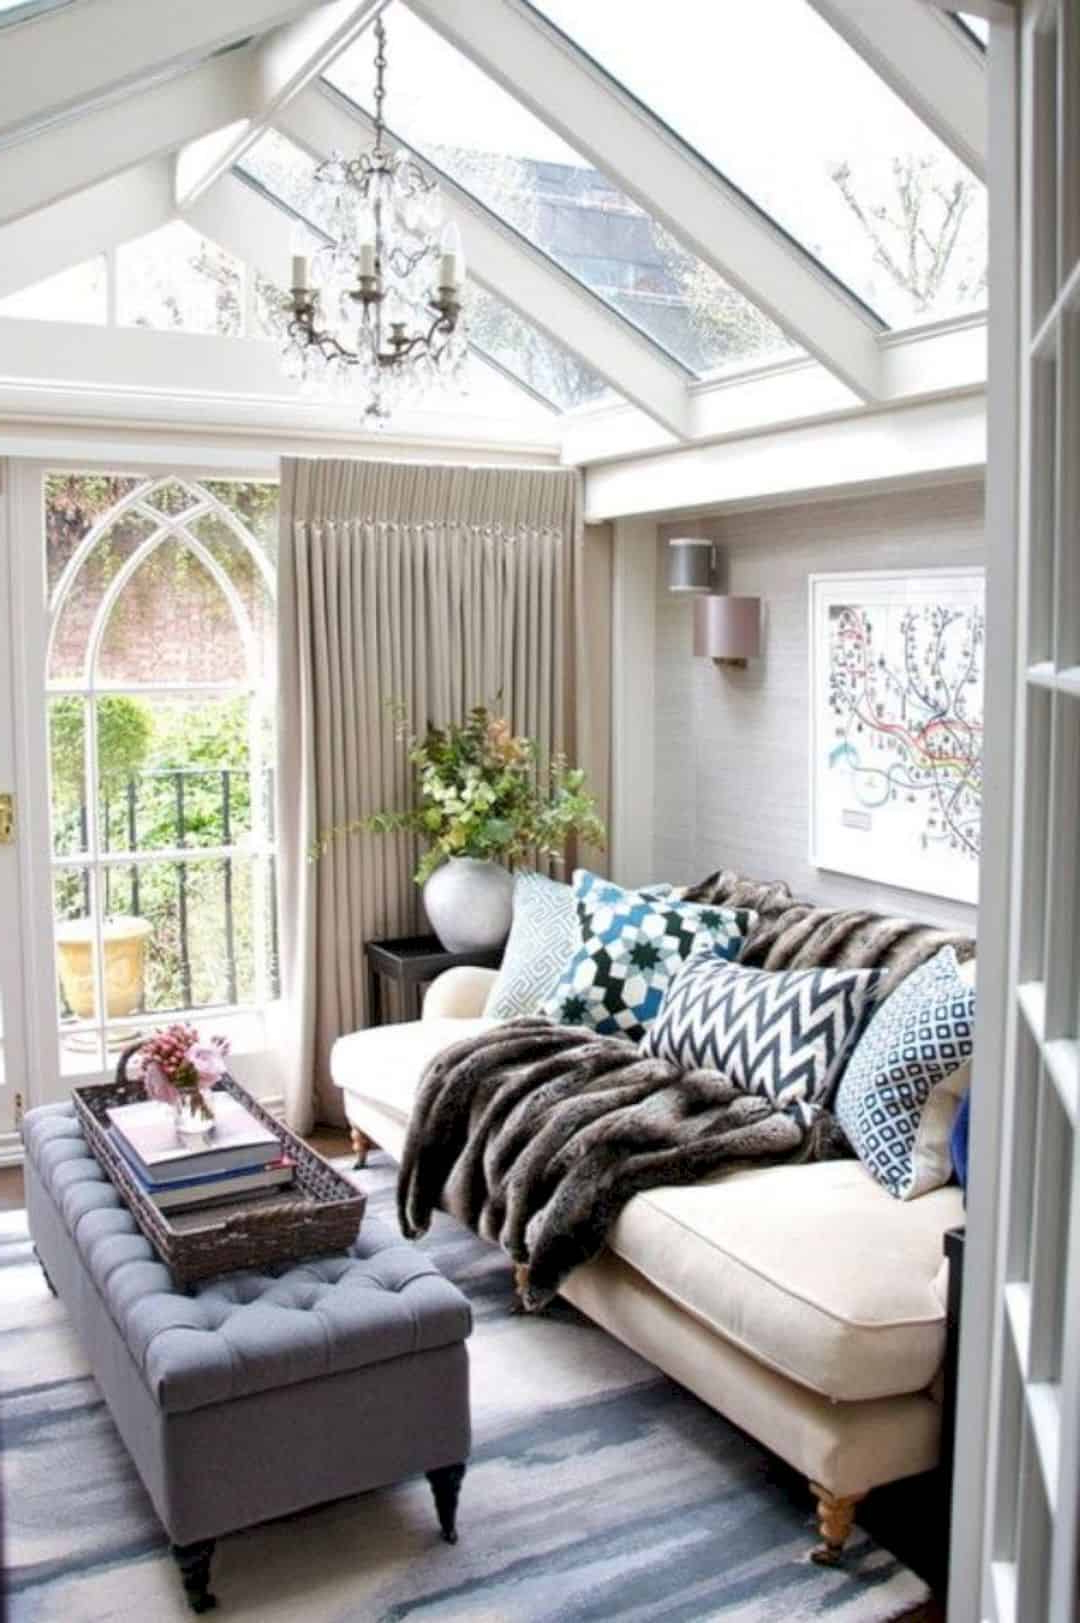 18 Small Conservatory Interior Design Ideas Futurist